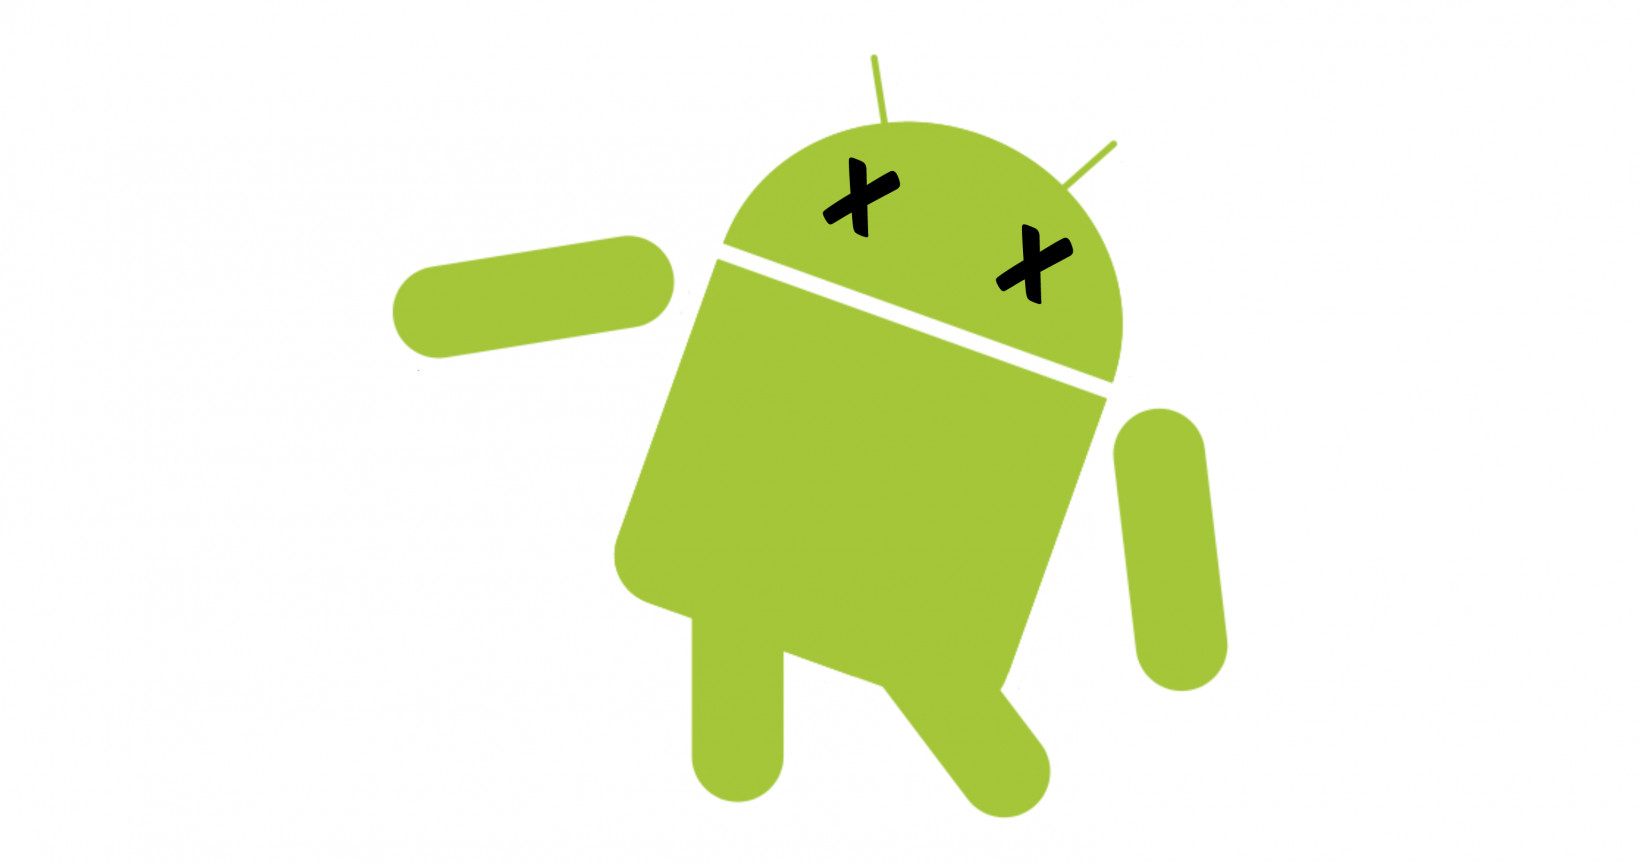 146 security flaws uncovered in pre-installed Android apps